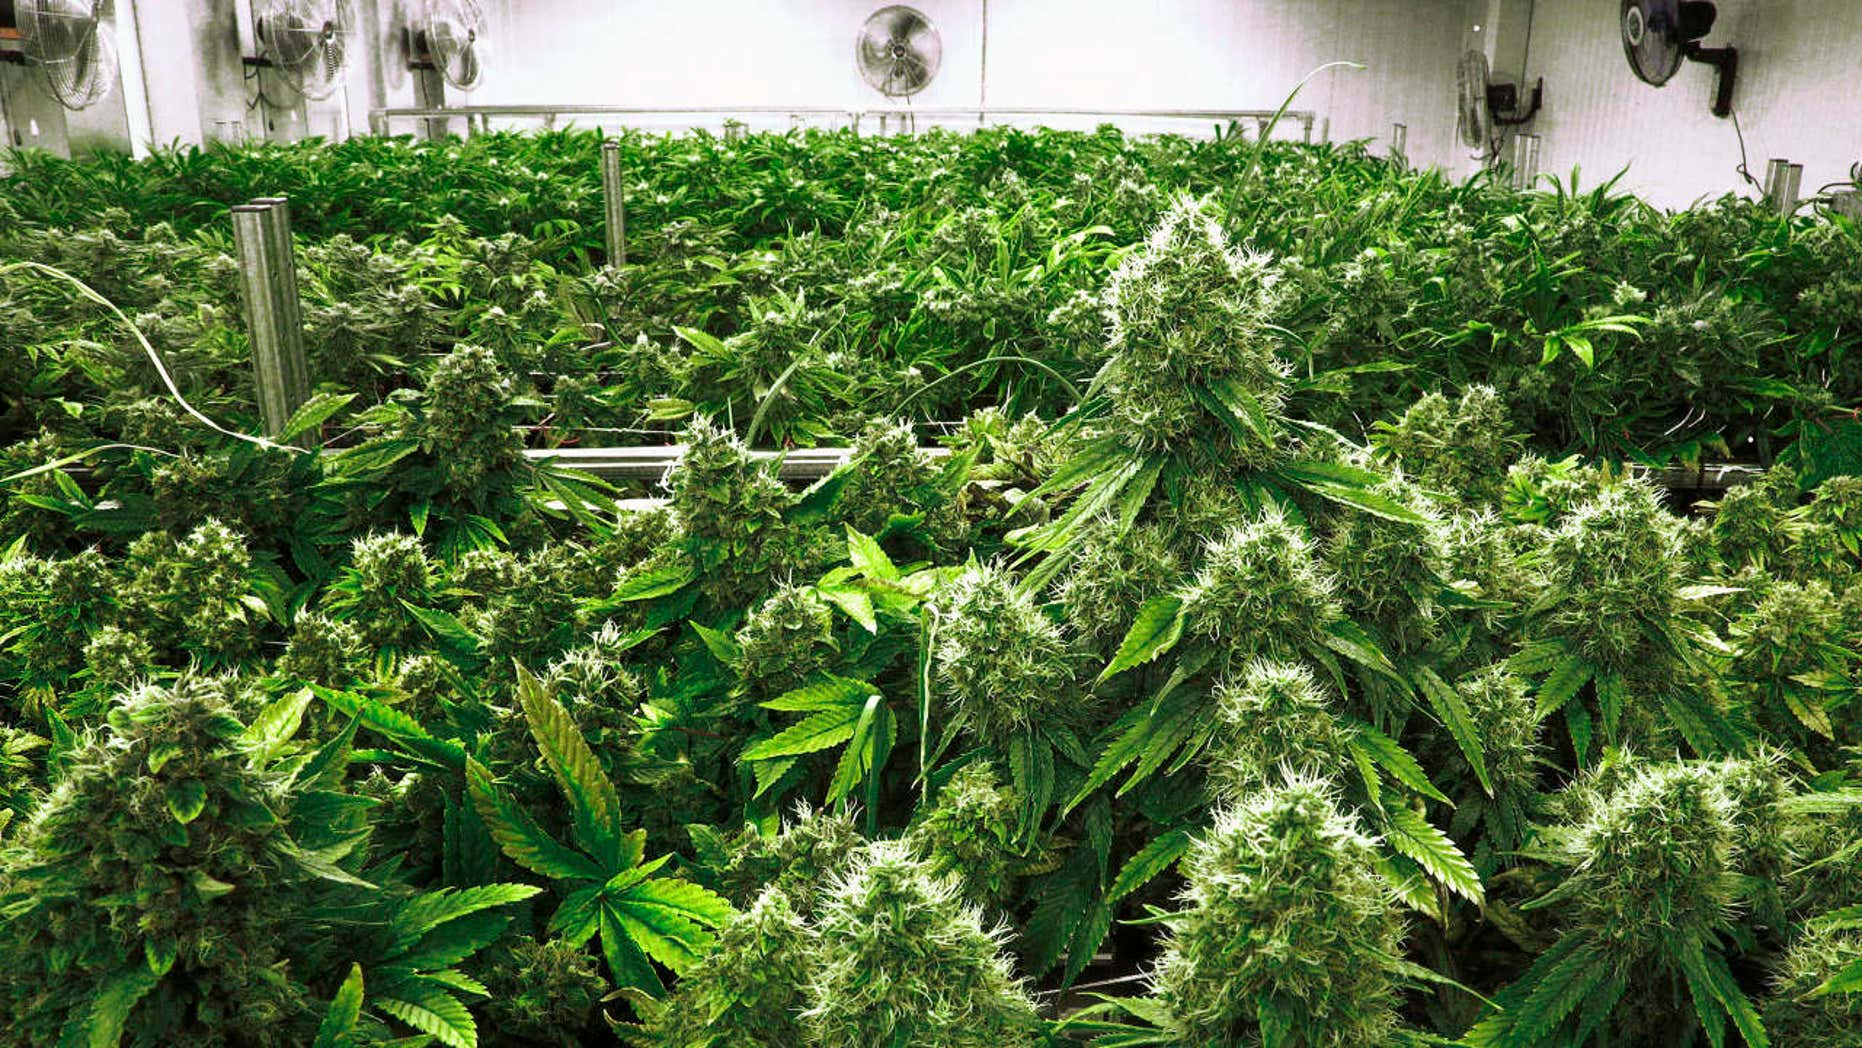 """ILE - In this Sept. 15, 2015 file photo, marijuana plants are a few weeks away from harvest in the """"Flower Room"""" at the Ataraxia medical marijuana cultivation center in Albion, Ill."""